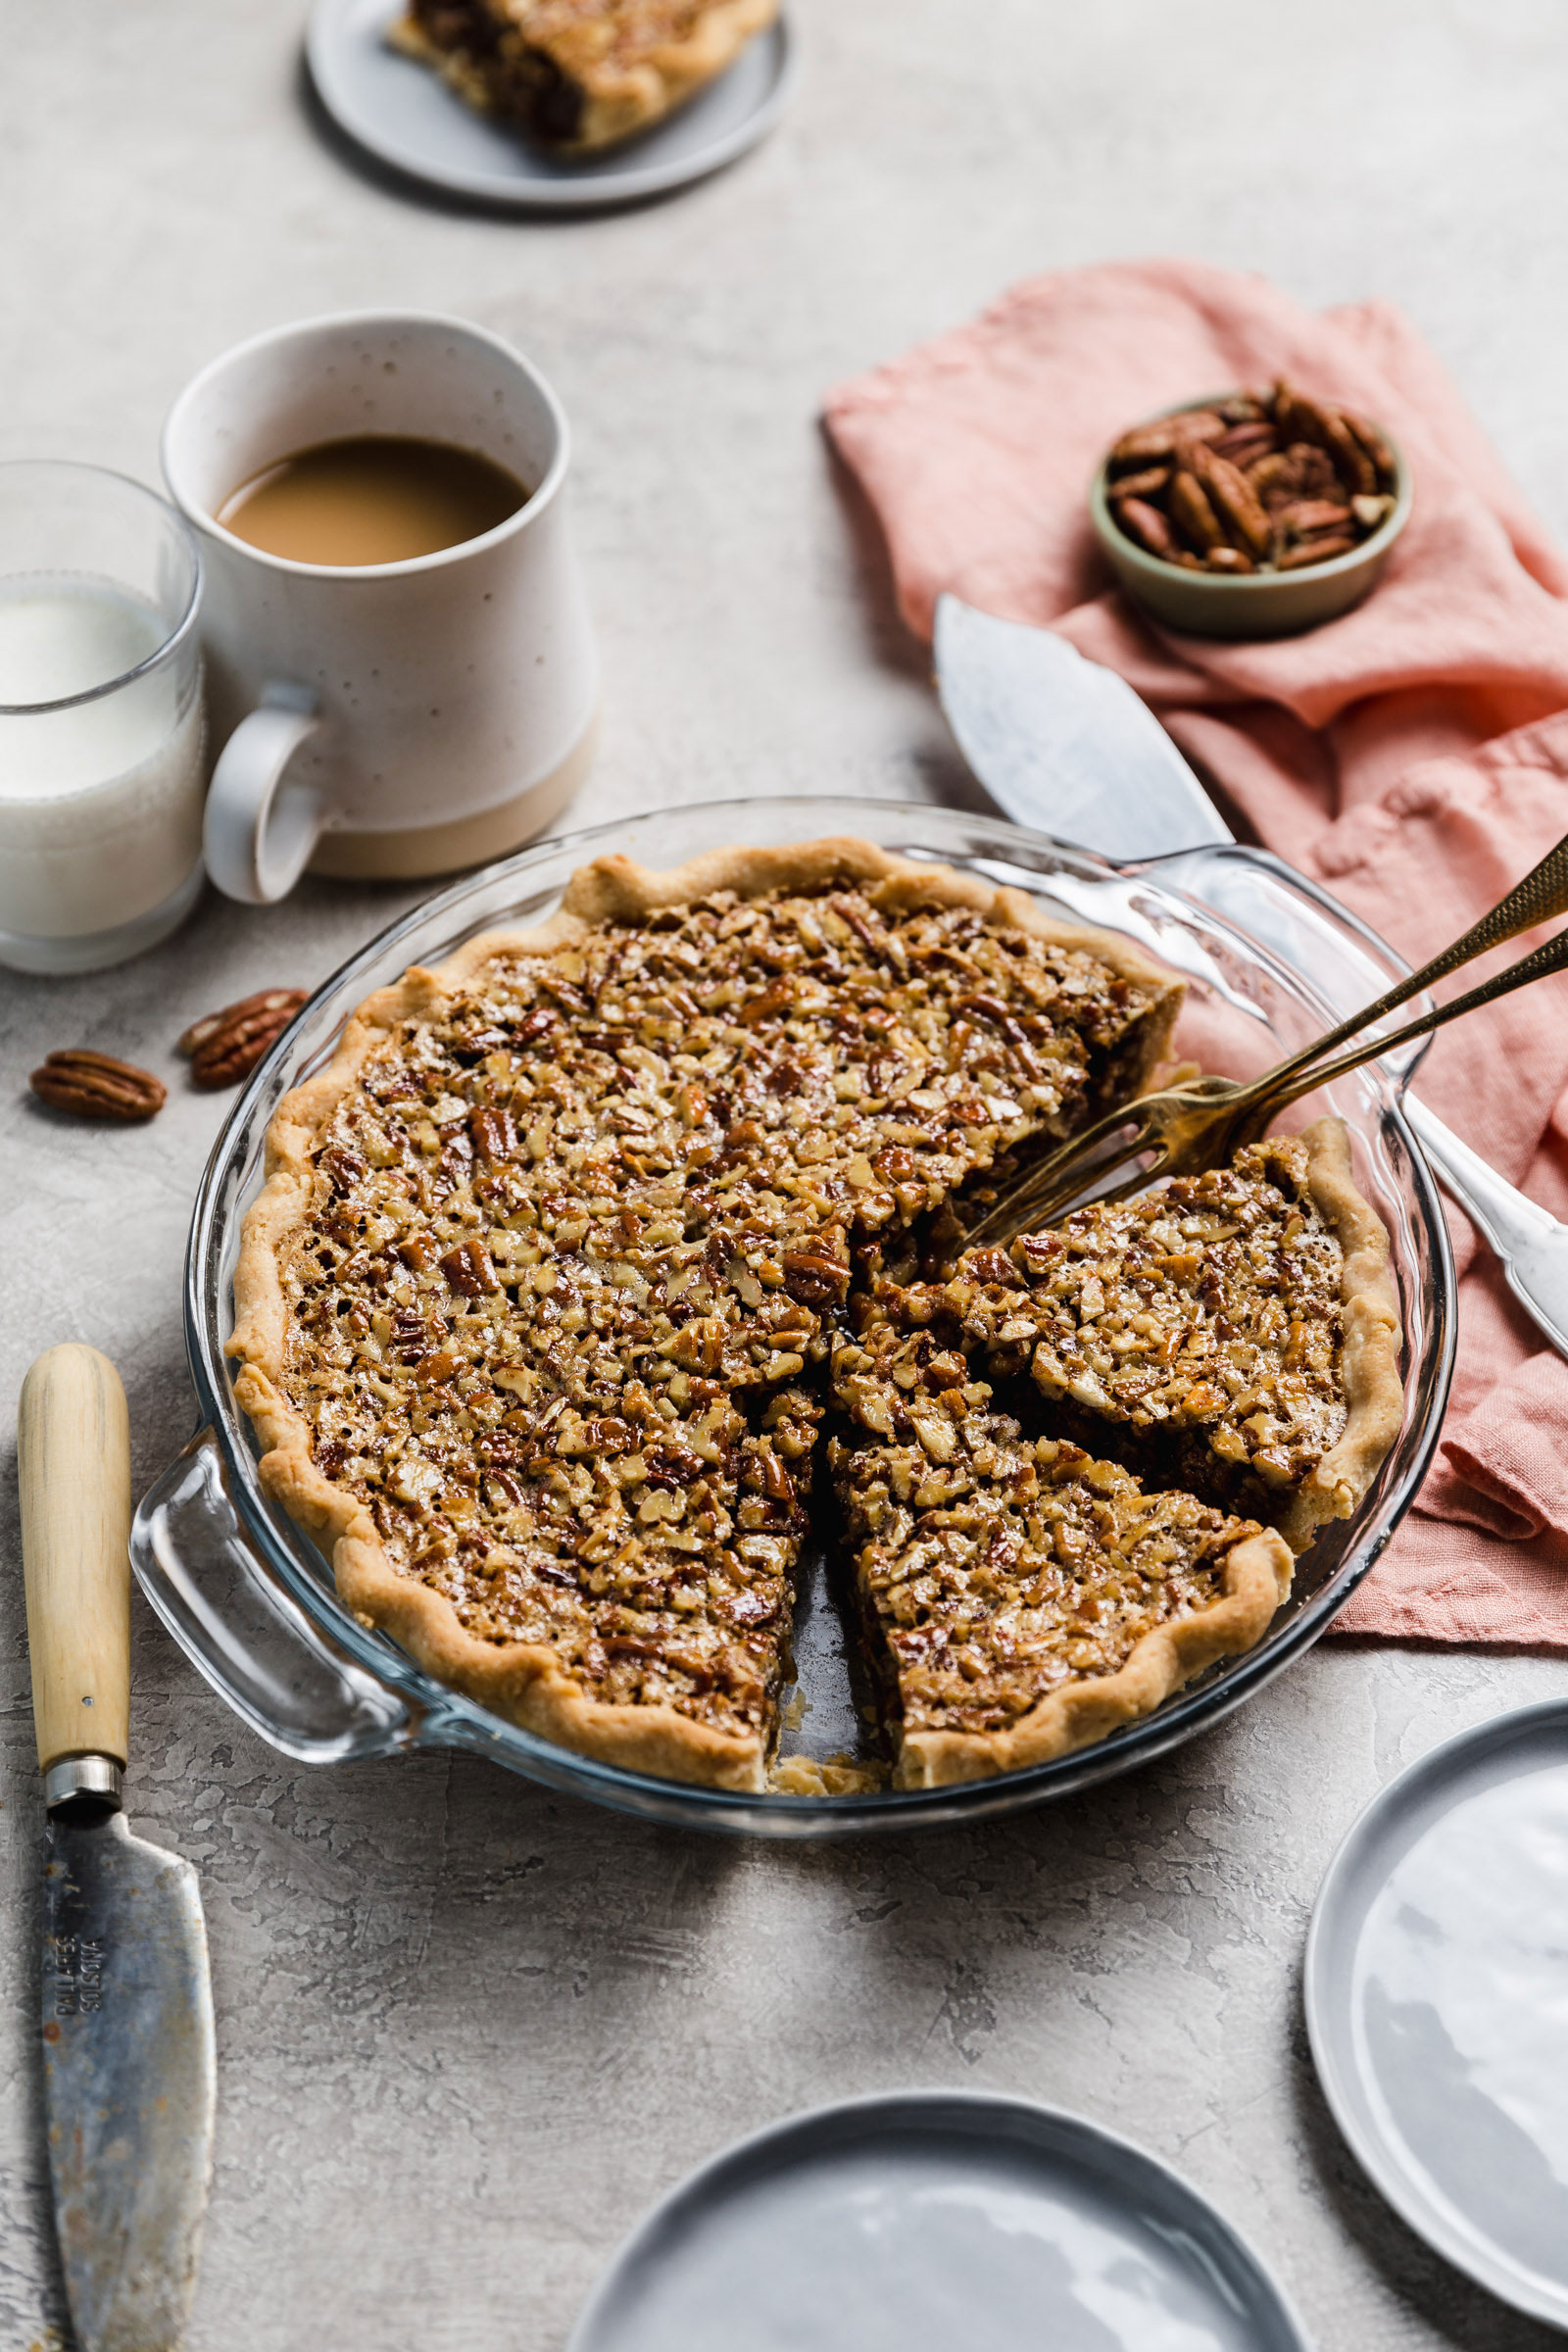 Pecan pie with two slices cut away and two forks resting inside the pie plate.